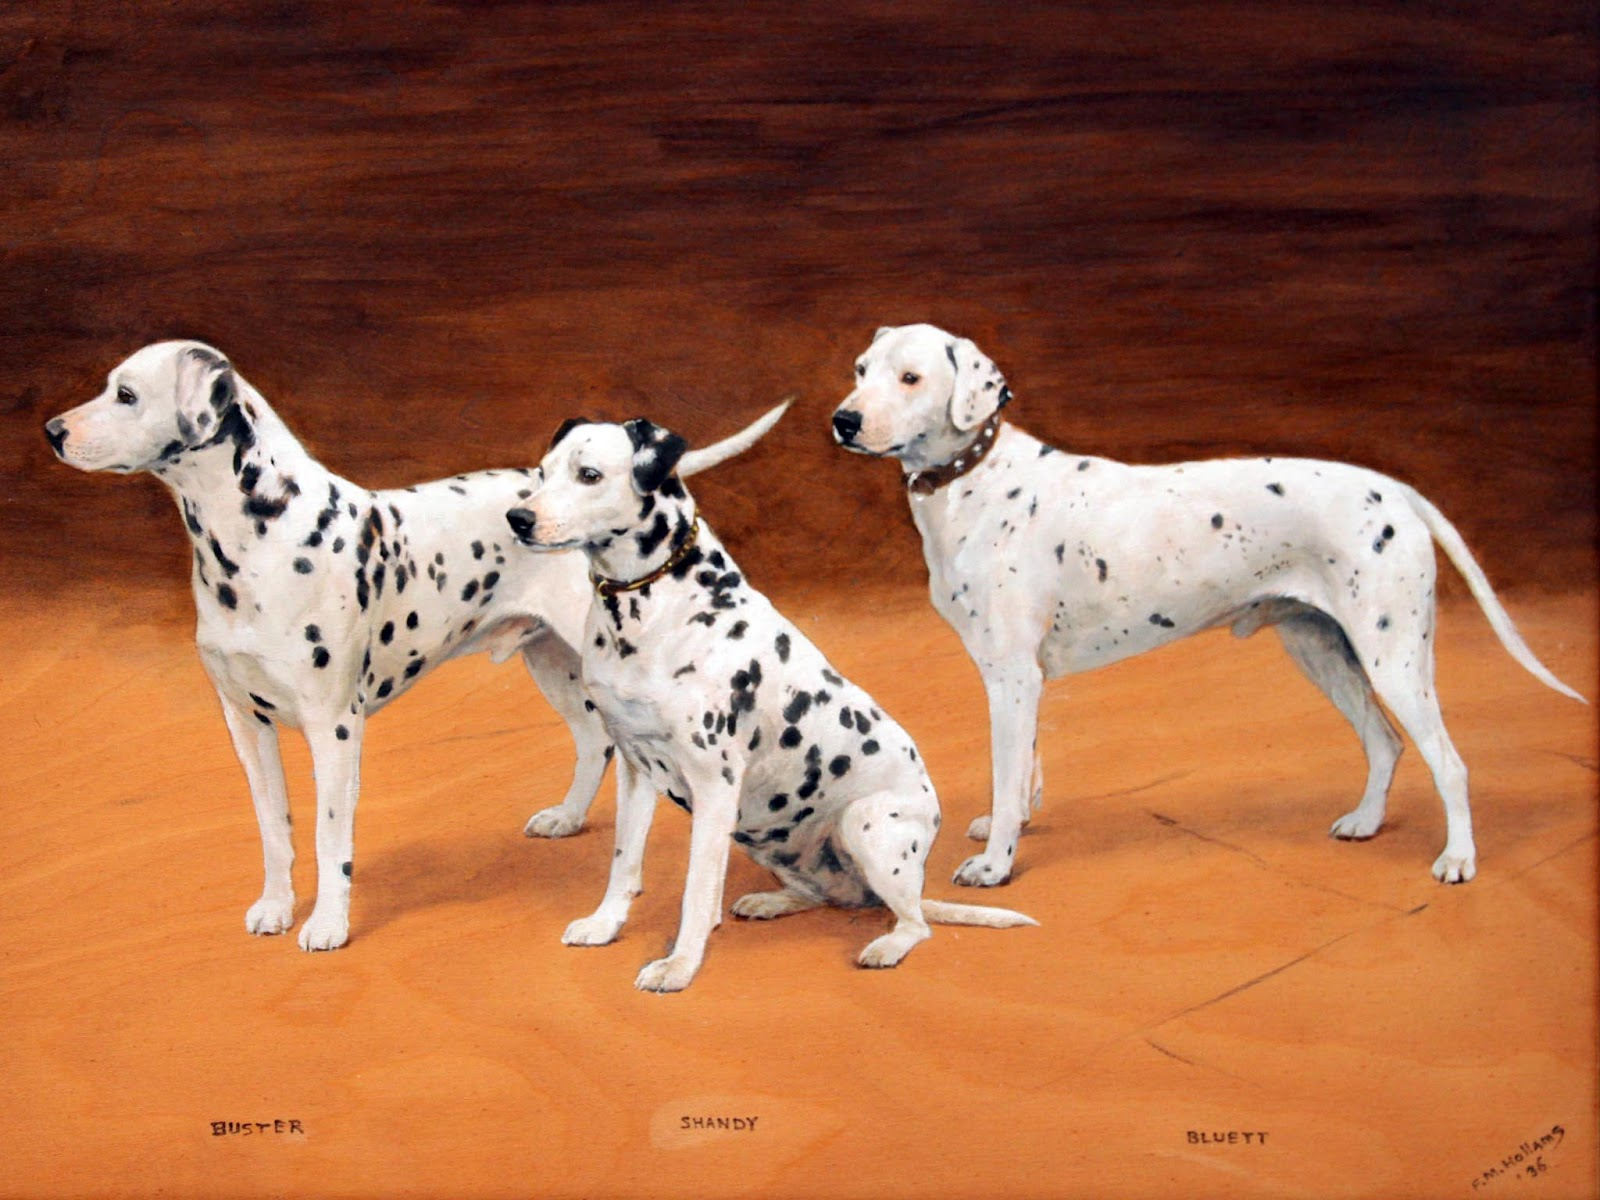 Beautiful And Cute Animal Wallpapers besides Big further Farm Dogs Part 1 161041169 also Dalmatian Wallpapers in addition Animals Animal Wallpapers Online Free Hd. on animal wallpaper dogs